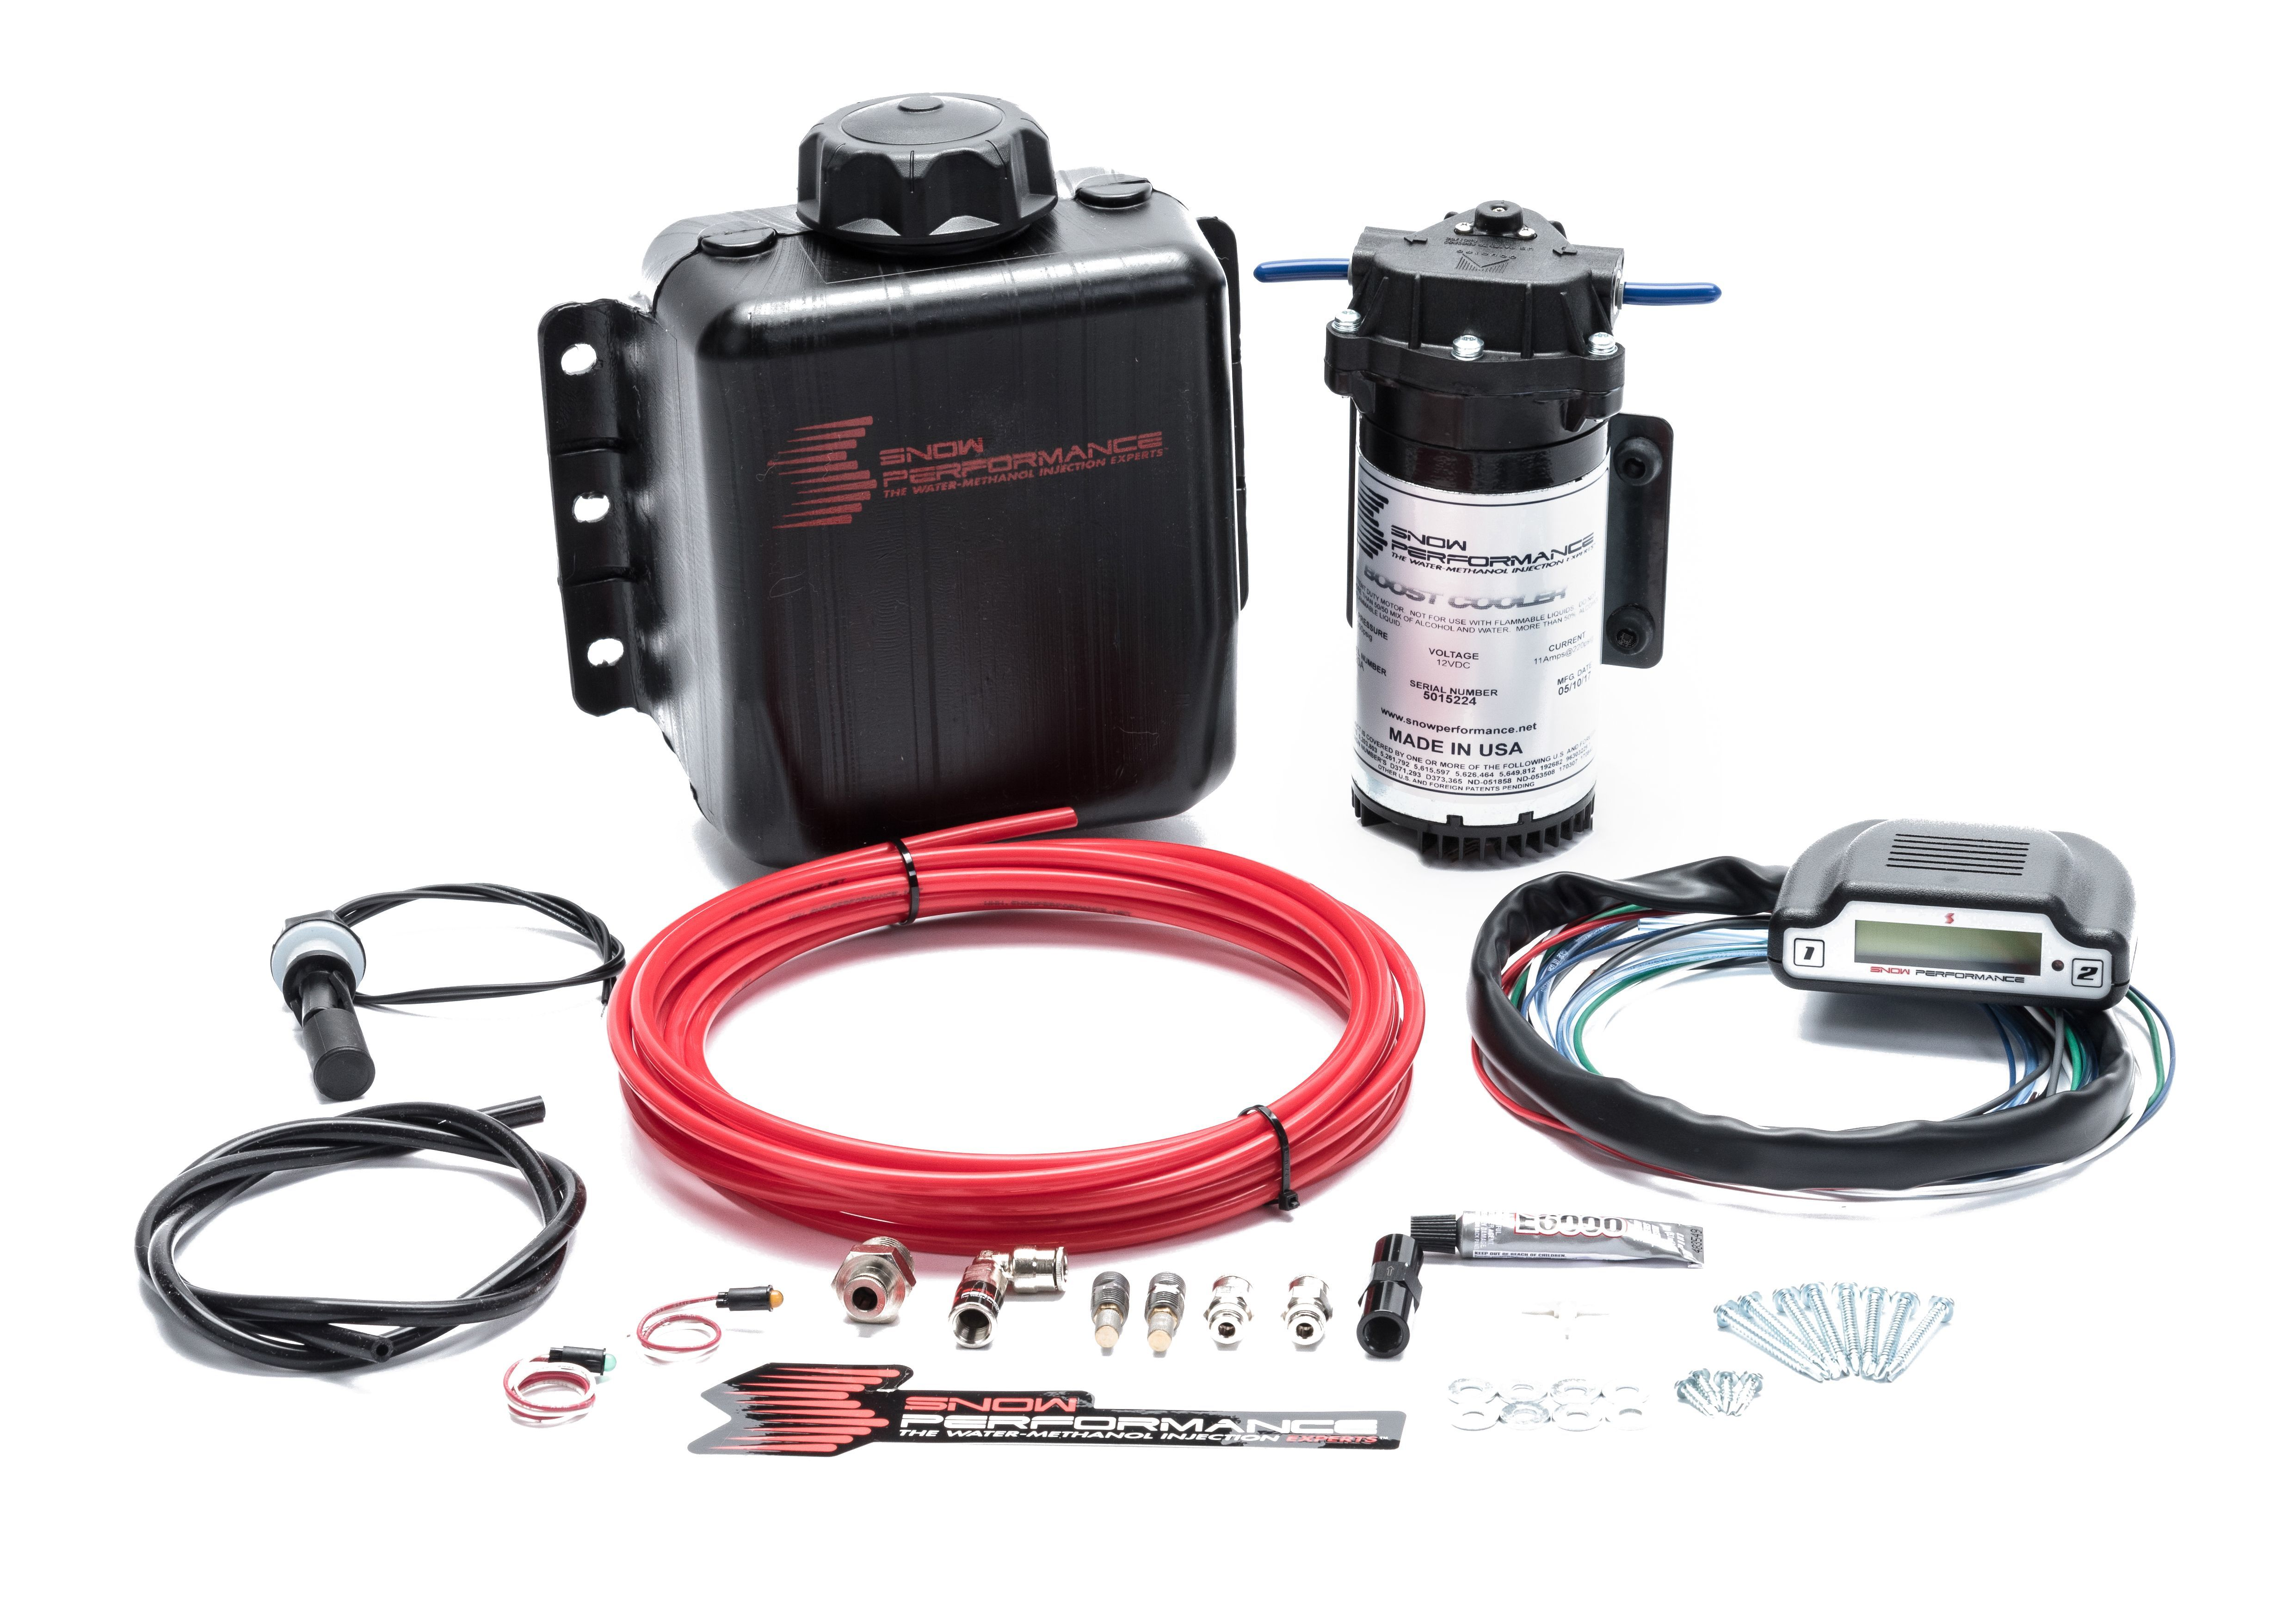 Snow Performance 310 Water Injection System, Stage 3 Boost Cooler, Boost / EFI Controlled, 3 qt Reservoir, Universal EFI Gas Engines, Kit